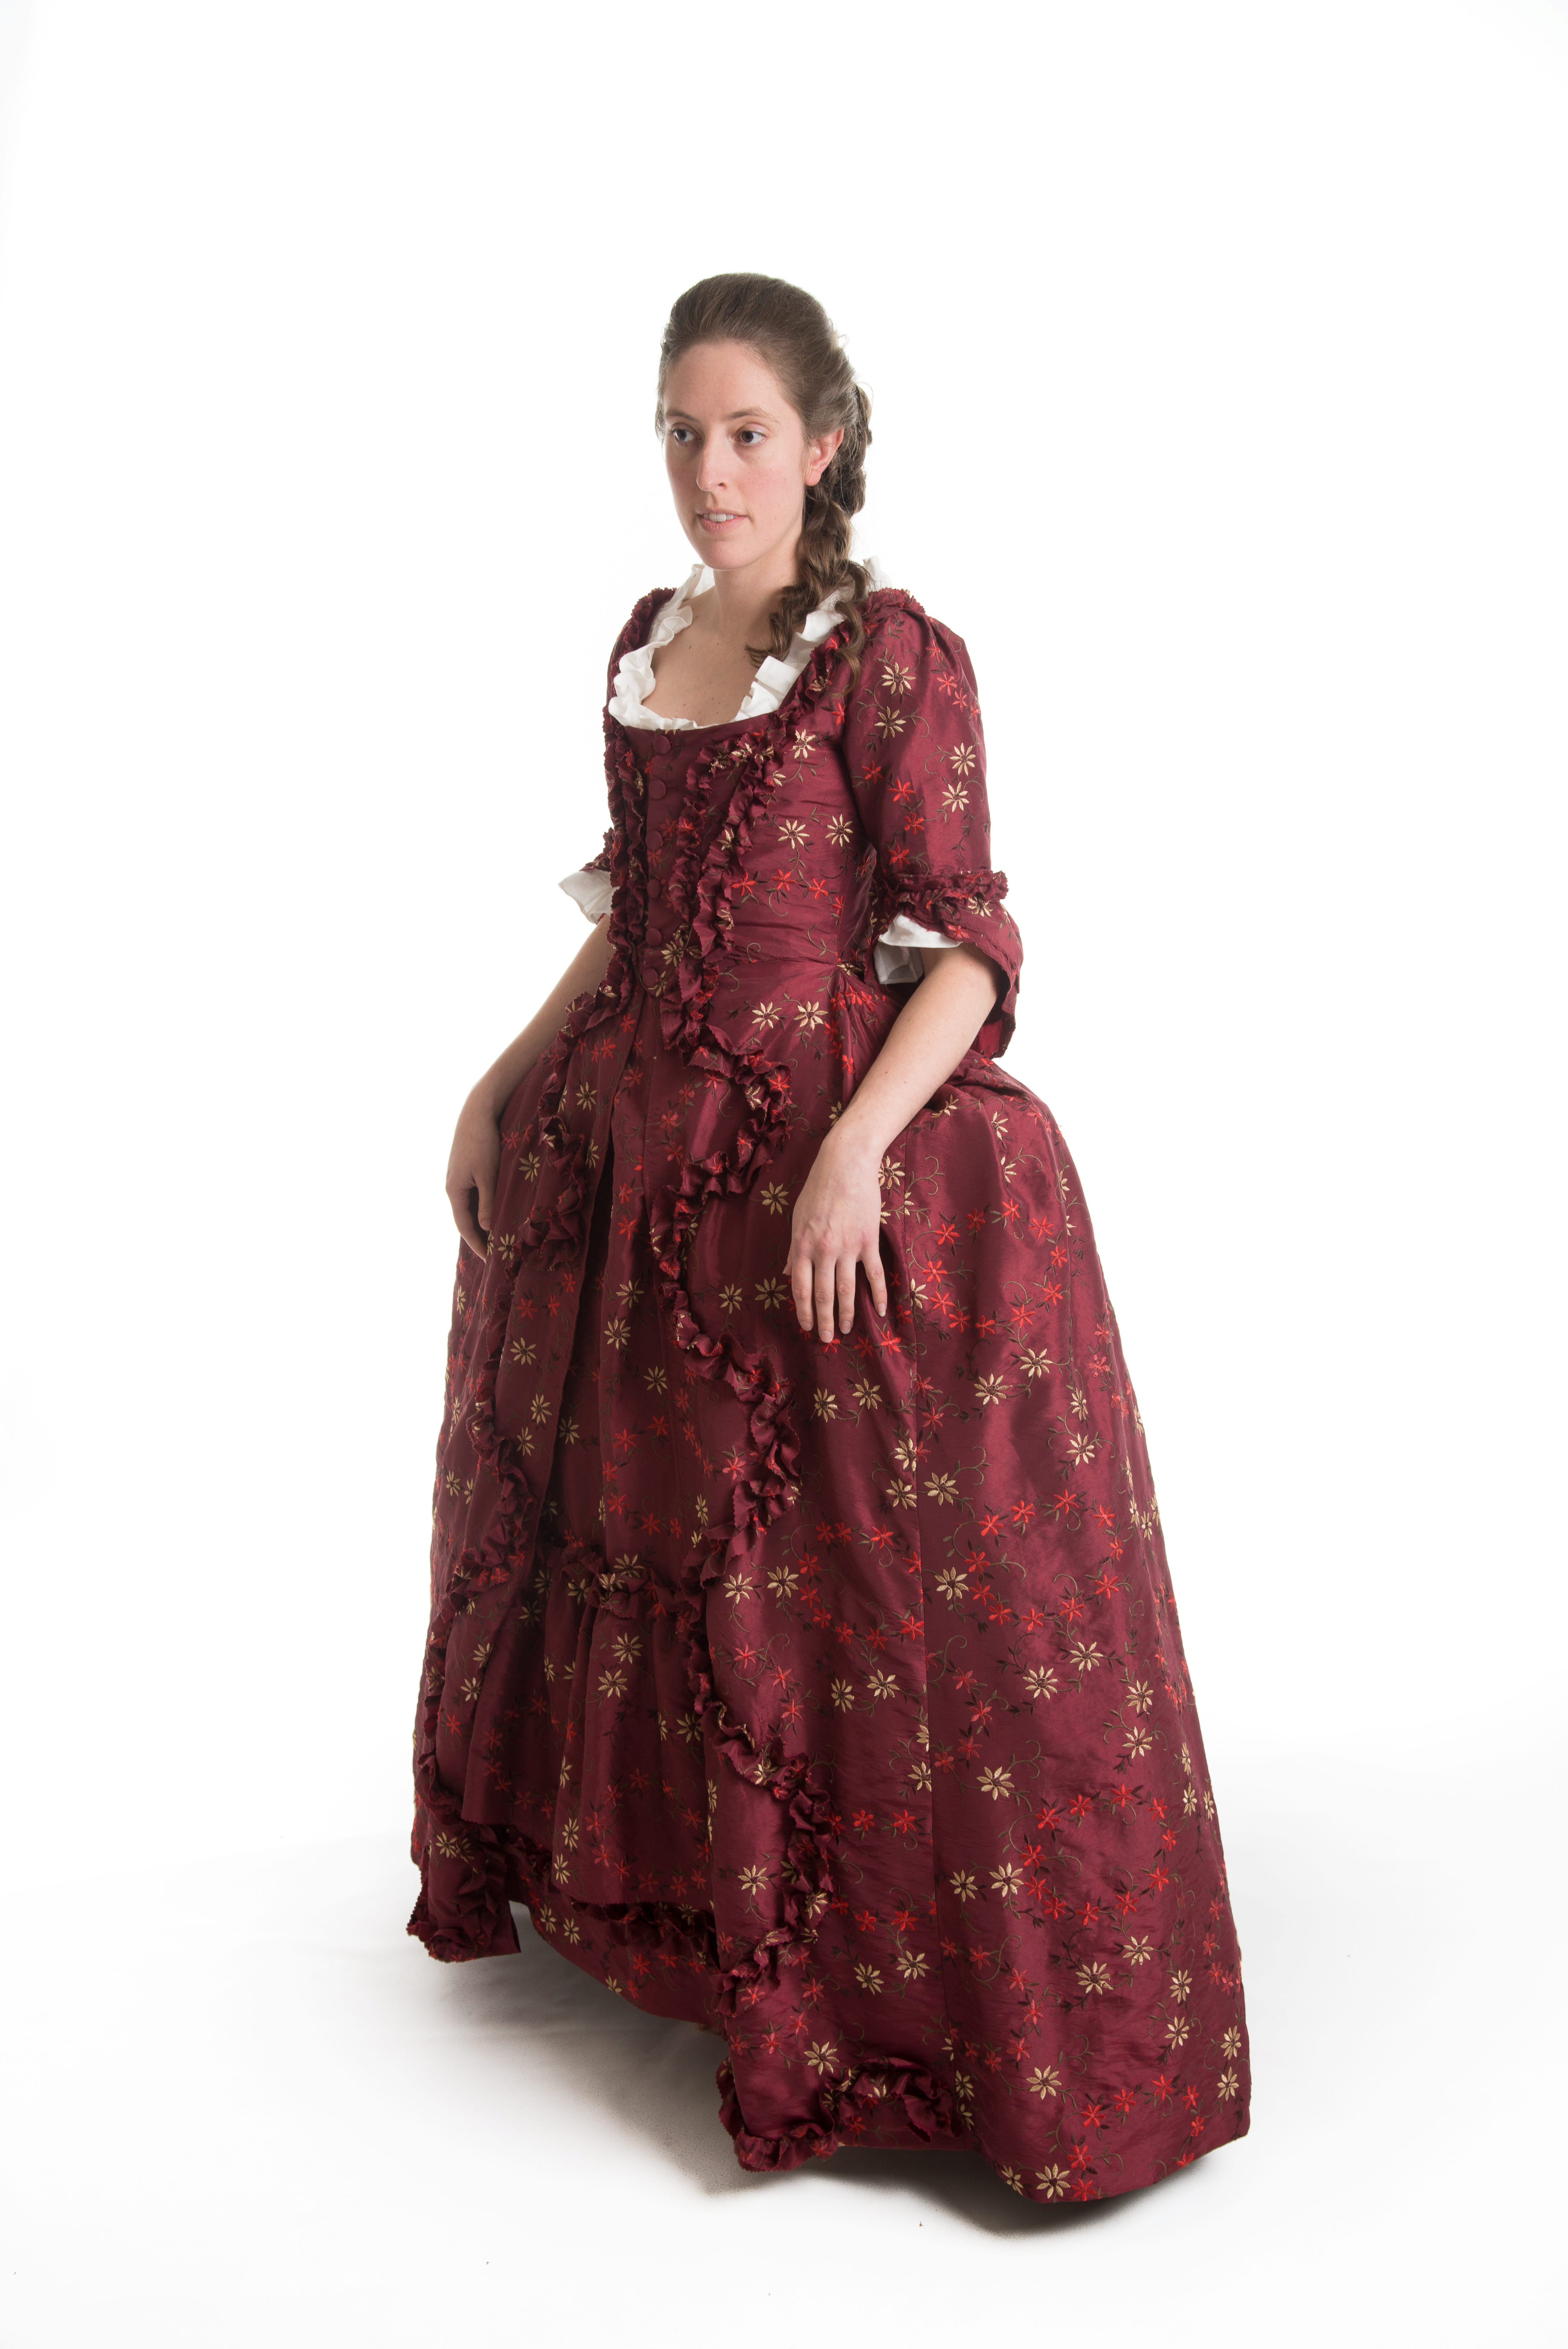 18th c dress, theatre costume for the georgian period